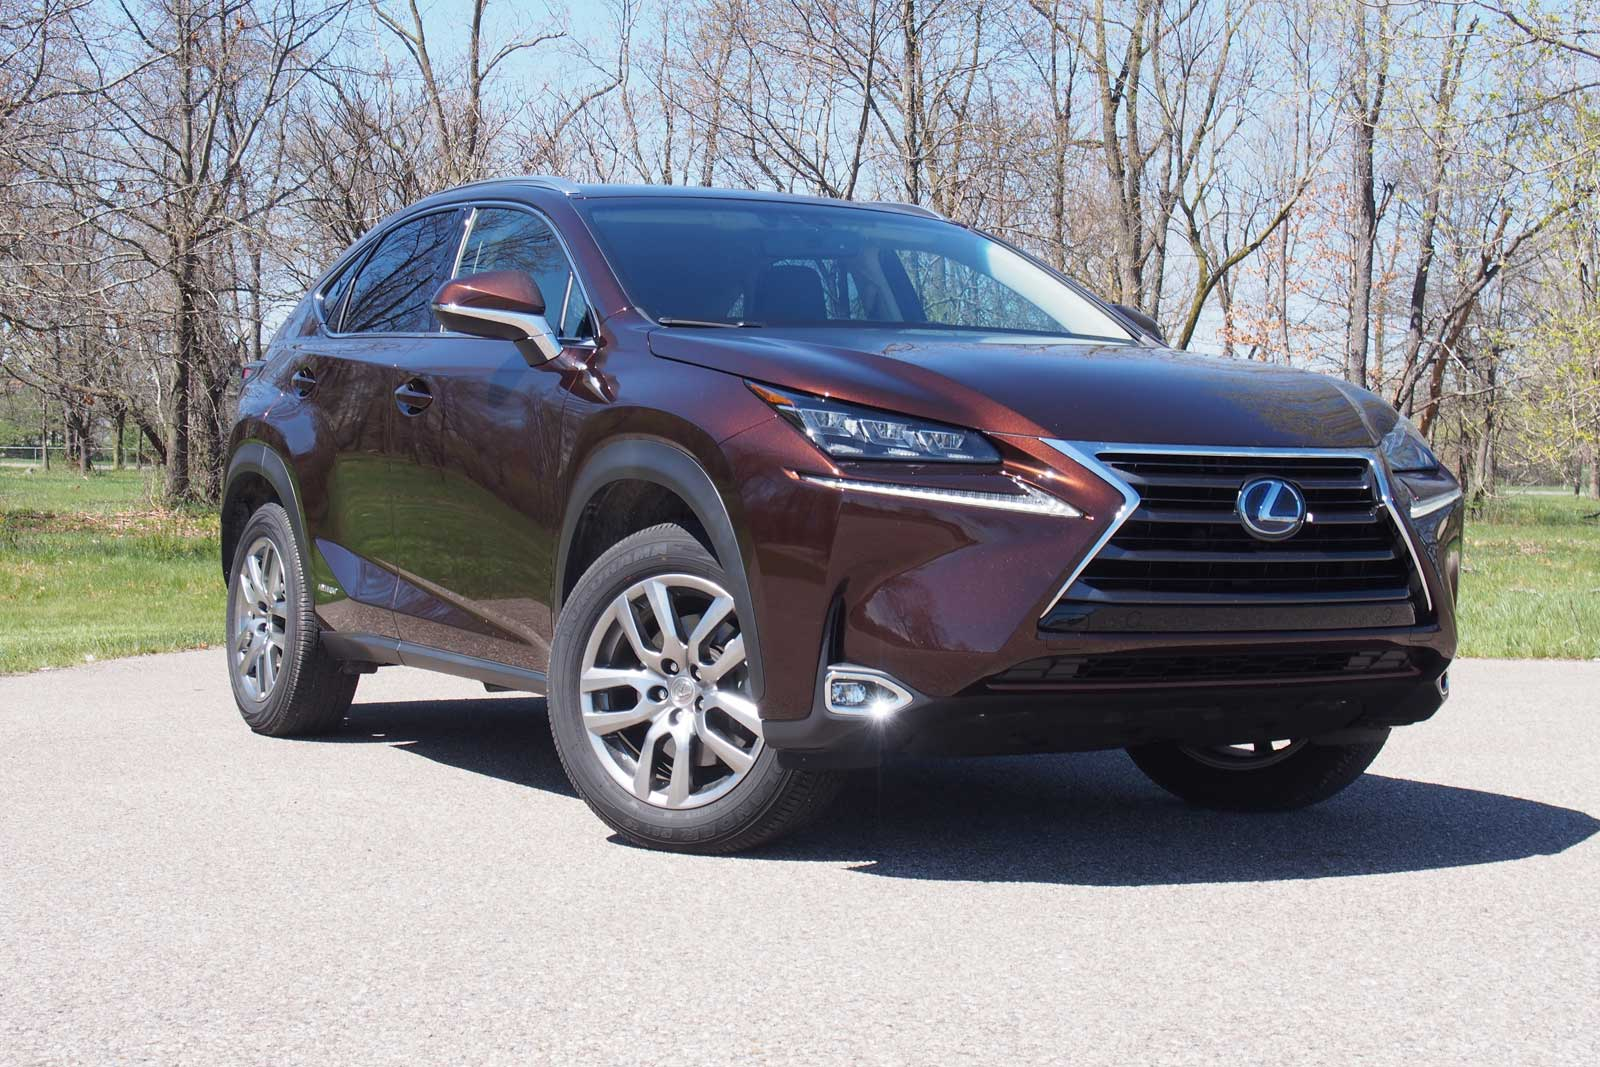 2016 lexus nx 300h review curbed with craig cole news. Black Bedroom Furniture Sets. Home Design Ideas